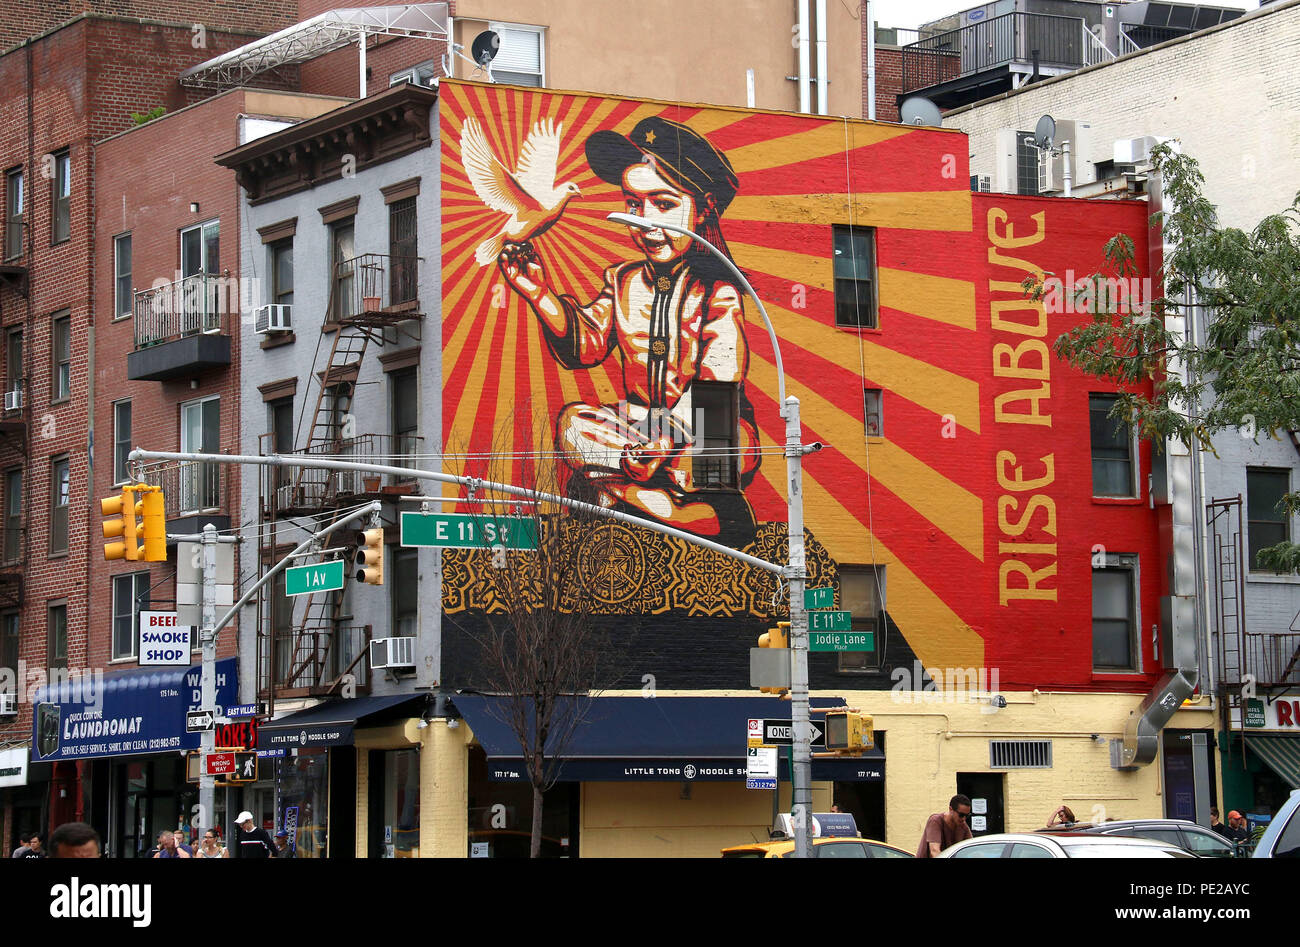 New York City, New York, USA. 12th Aug, 2018. A view of the 'Rise Above' mural by artist SHEPARD FAIREY located on East 11th Street and 1st Avenue in the East Village. The model was his eldest daughter at the age of 3 years. The artist is best known for his Obama 'Hope' poster. The project is meant to be uplifting and make kids and New Yorkers hopeful and happy. Credit: Nancy Kaszerman/ZUMA Wire/Alamy Live News Stock Photo